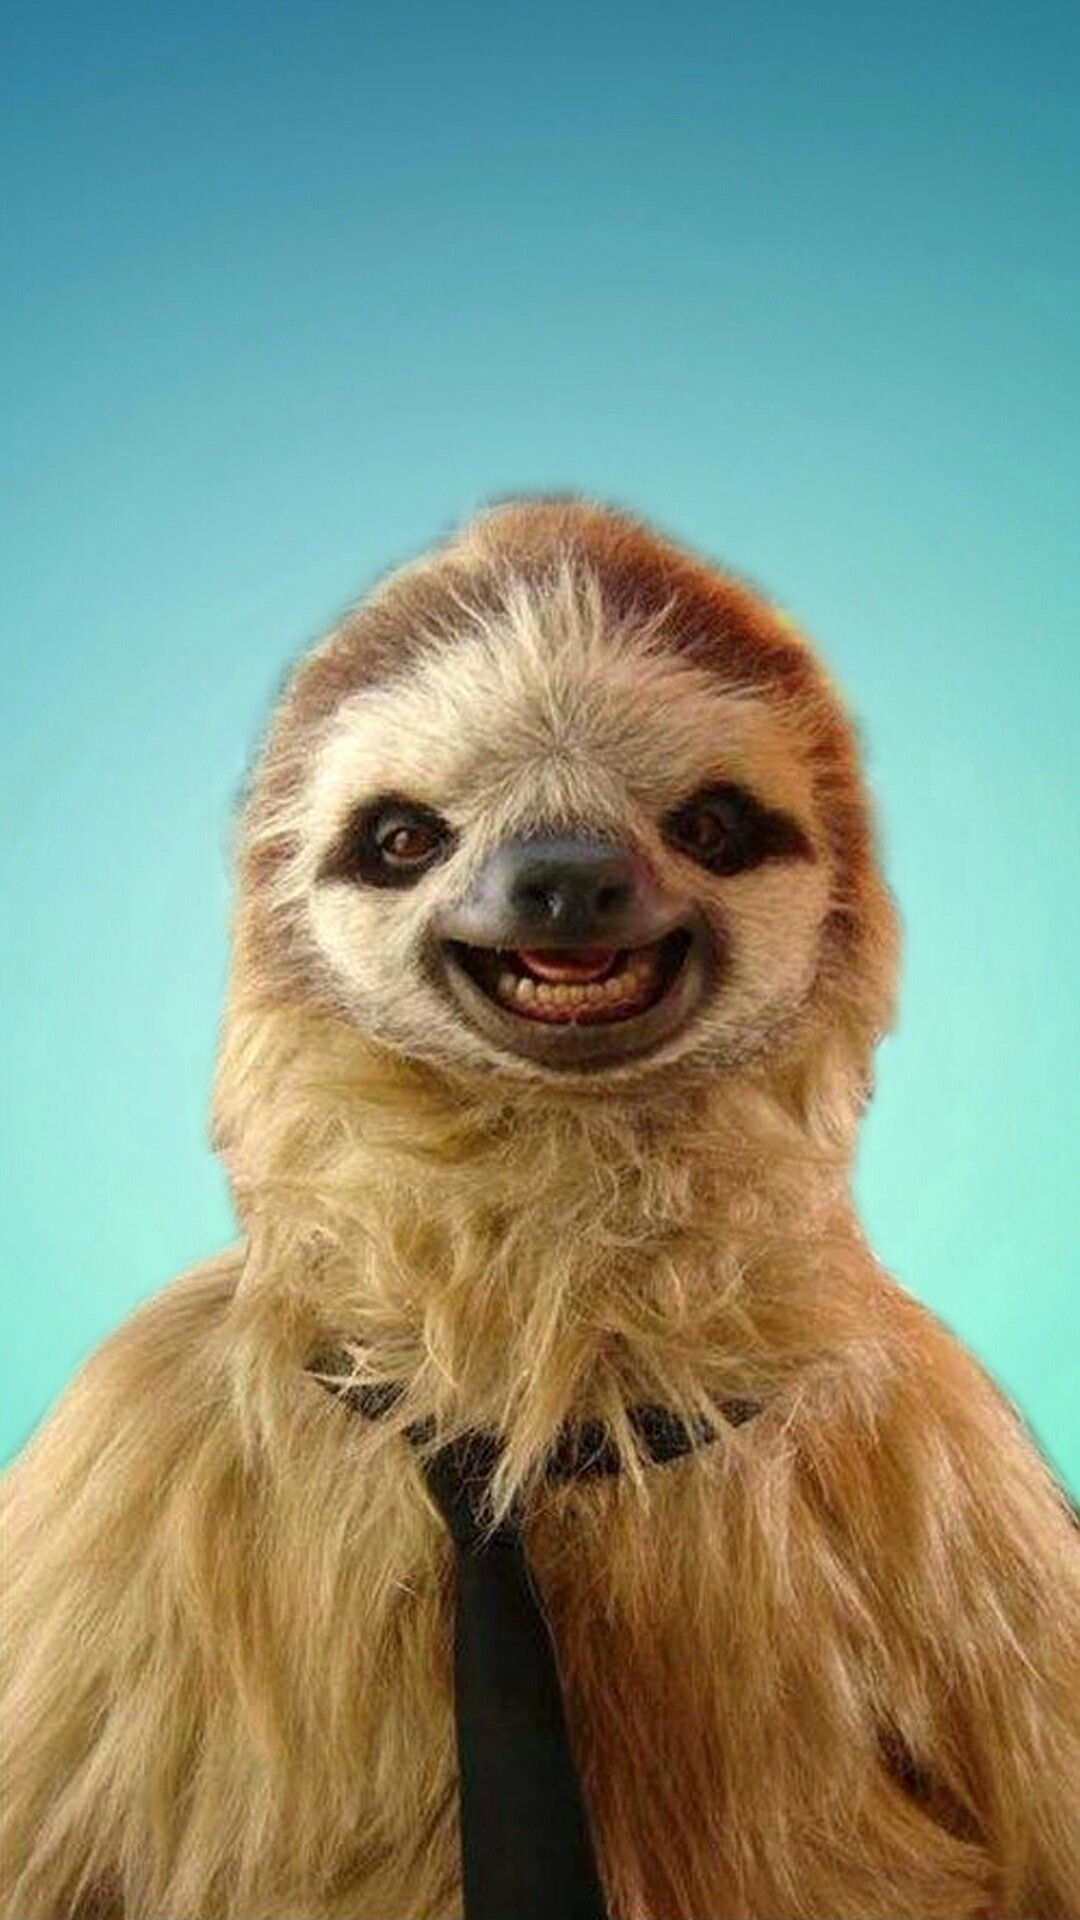 Cute Sloth Wallpaper 67 Images Cute Sloth Cute Baby Sloths